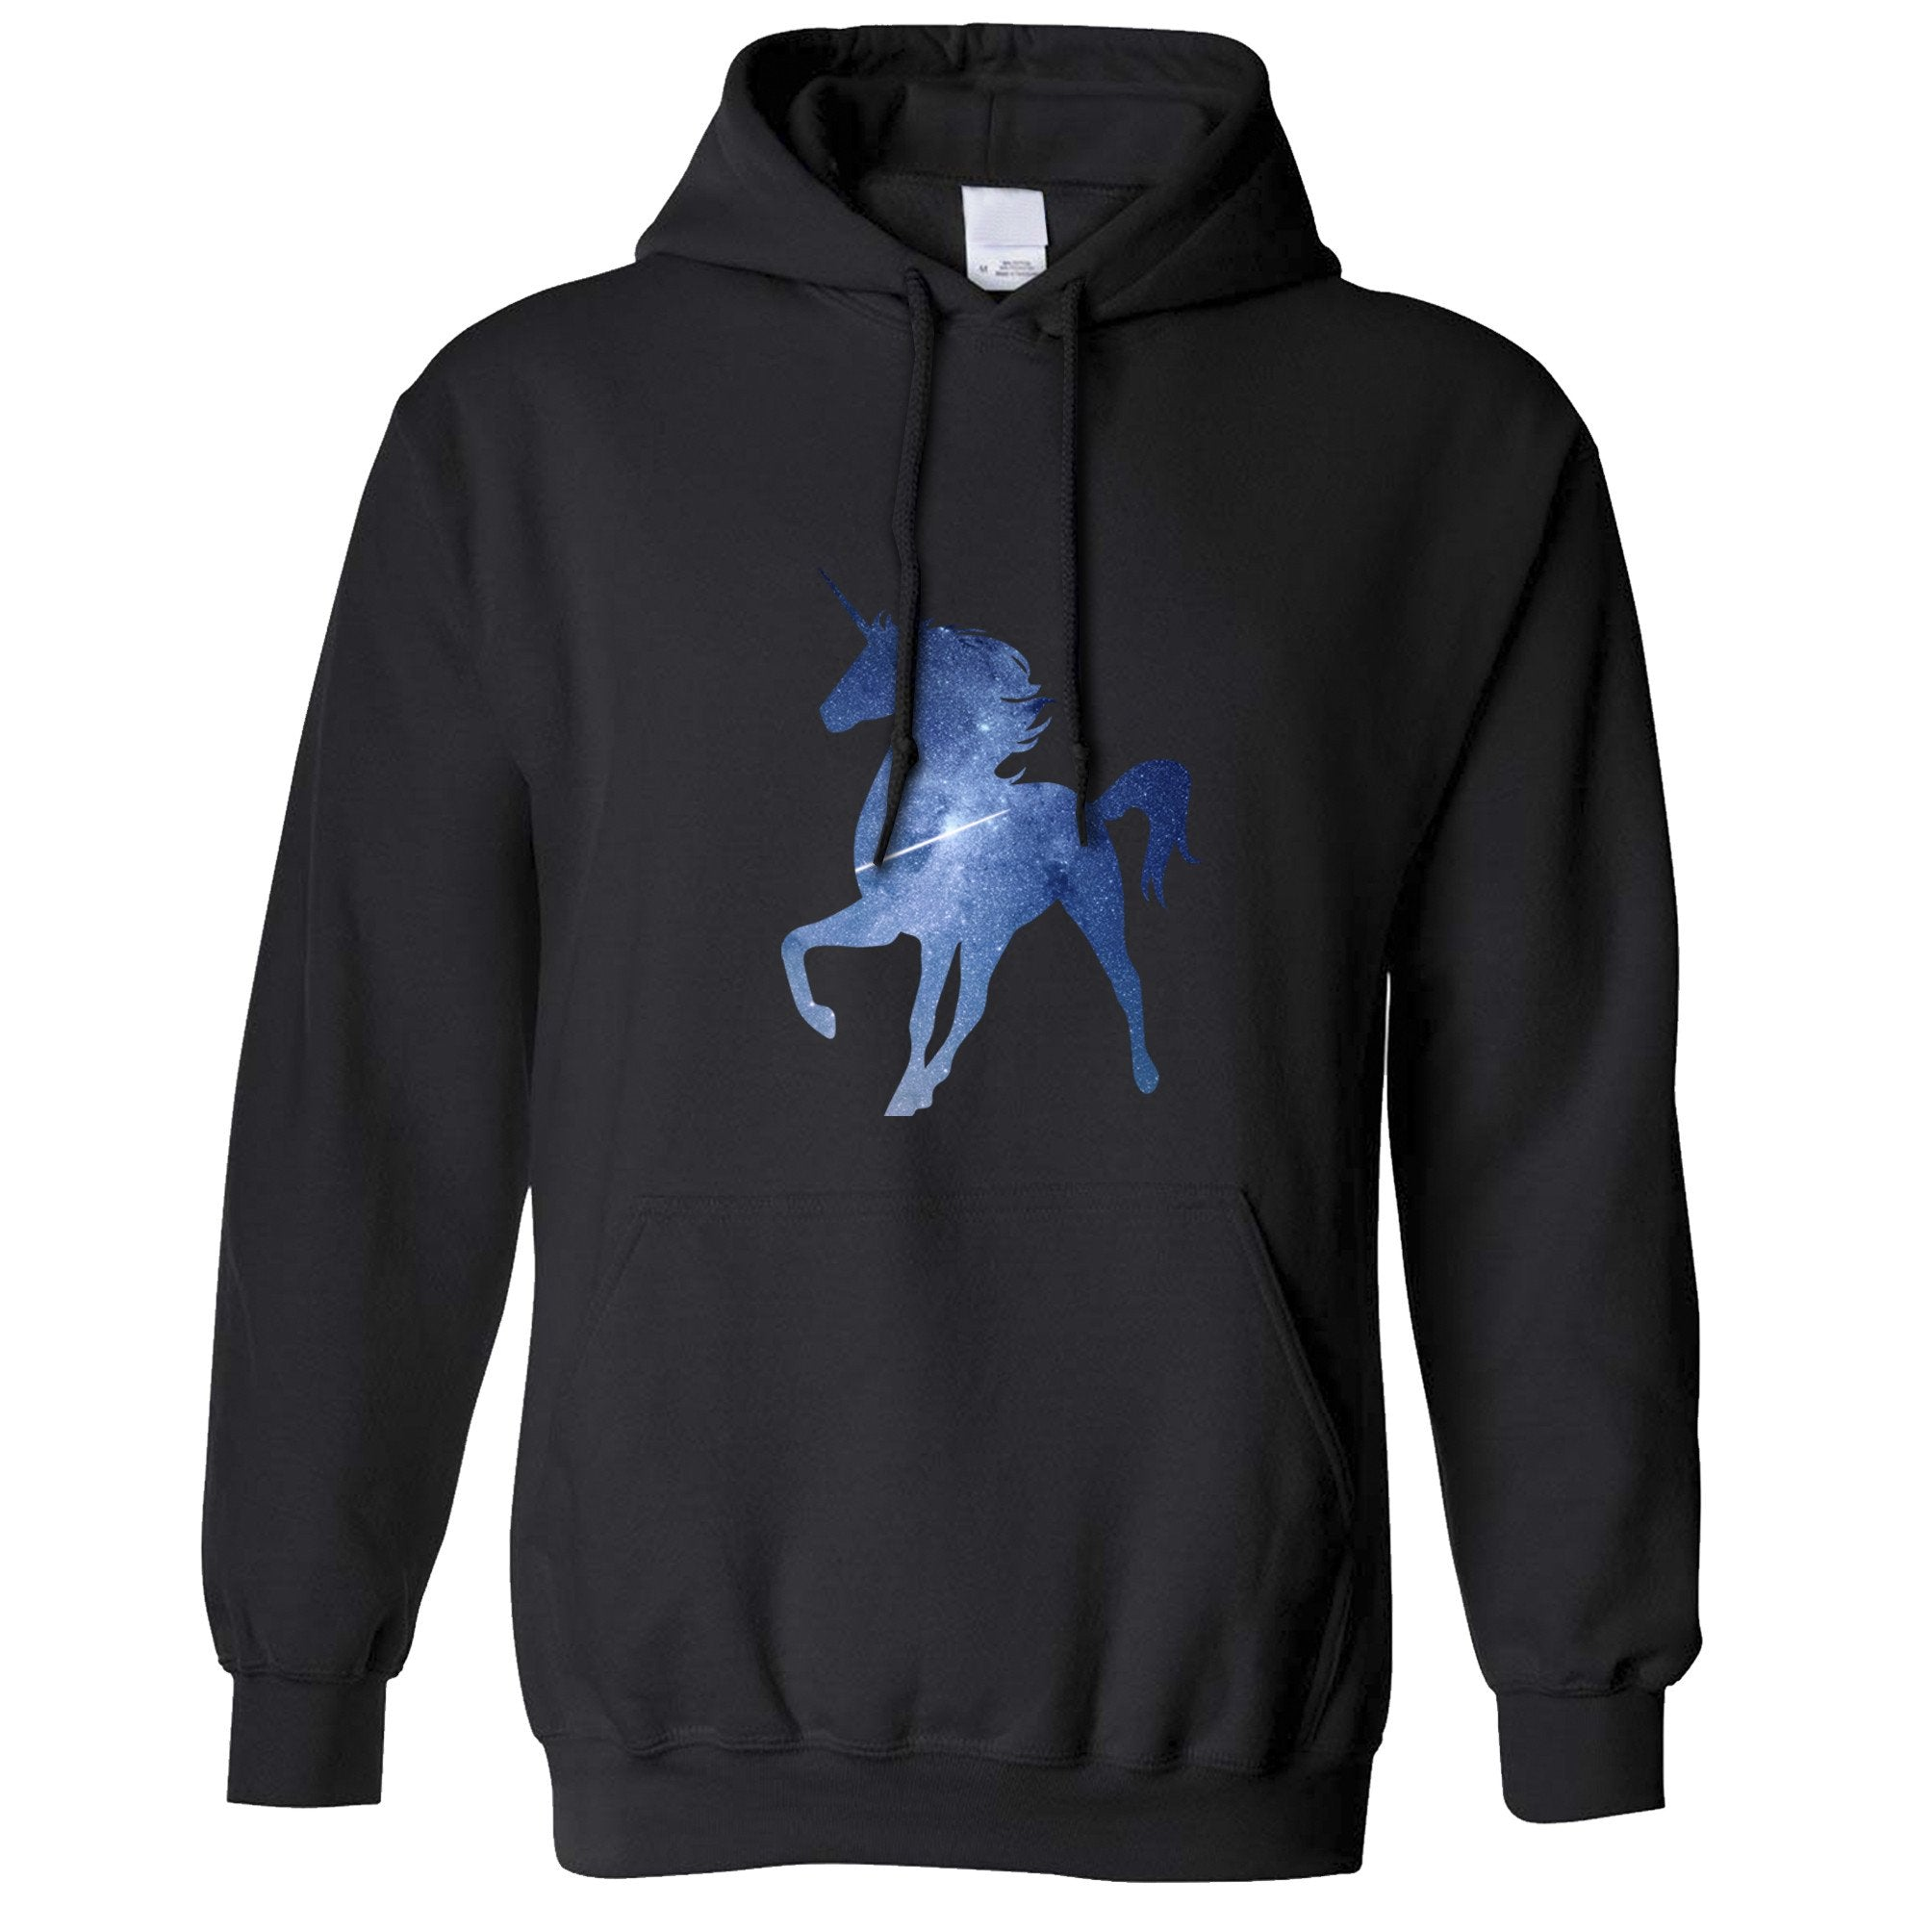 Mythical Space Hoodie Galaxy Unicorn Silhouette Hooded Jumper